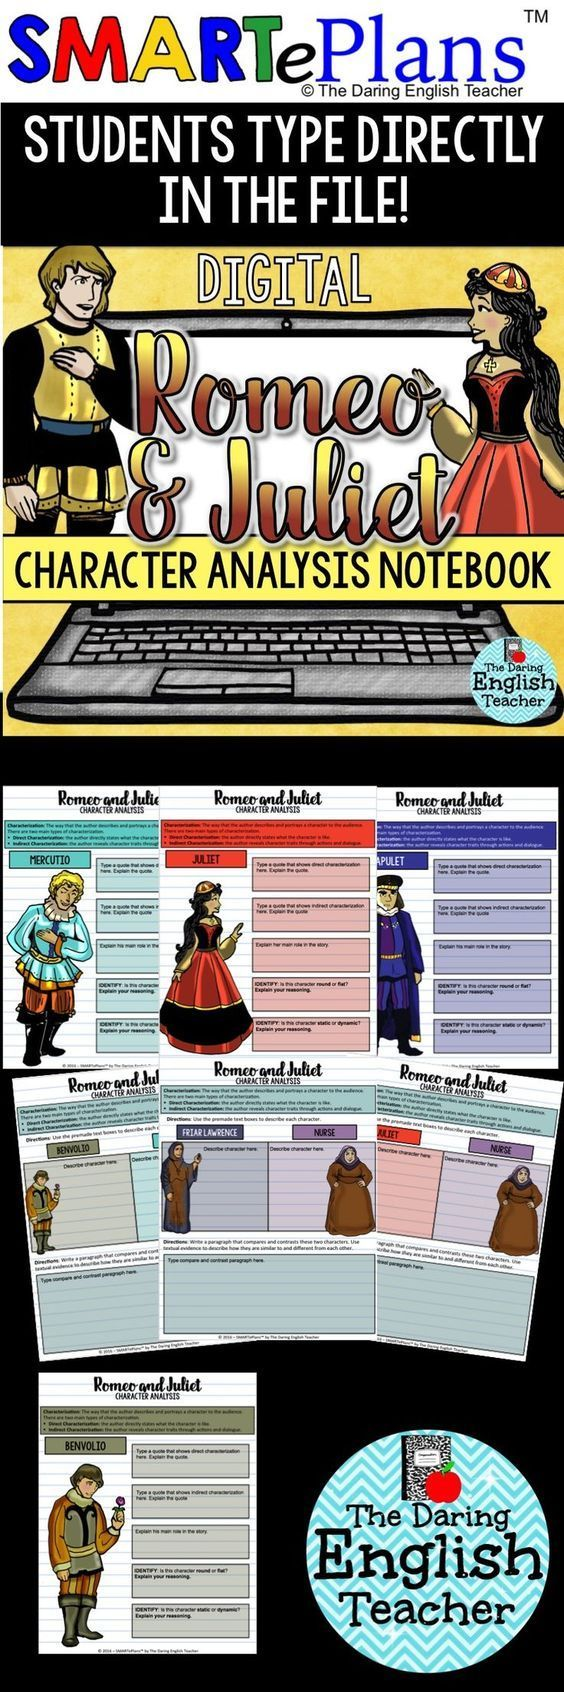 an overview of the geoffrey chaucers social commentary in the novel the canterbury tales By geoffrey chaucer the canterbury tales written in the late 14th century chaucer uses social commentary when describing the characters in the prologue.